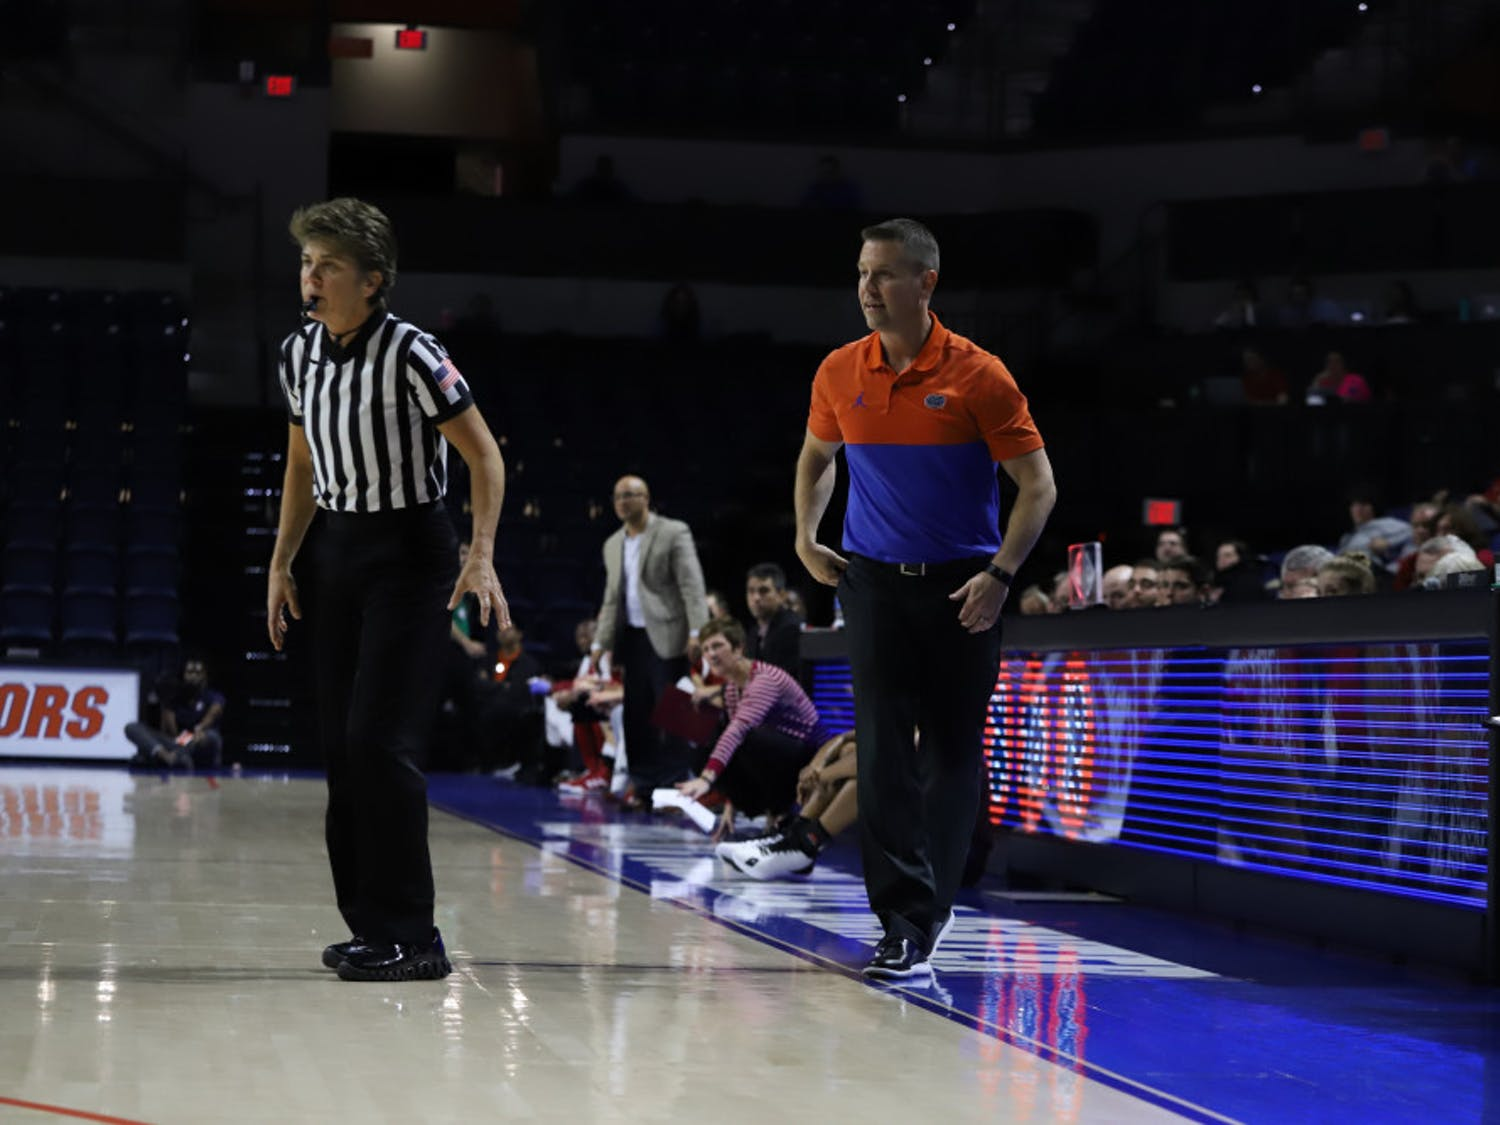 Florida Women's Basketball coach Cam Newbauer added two new transfers to his 2020-21 squad